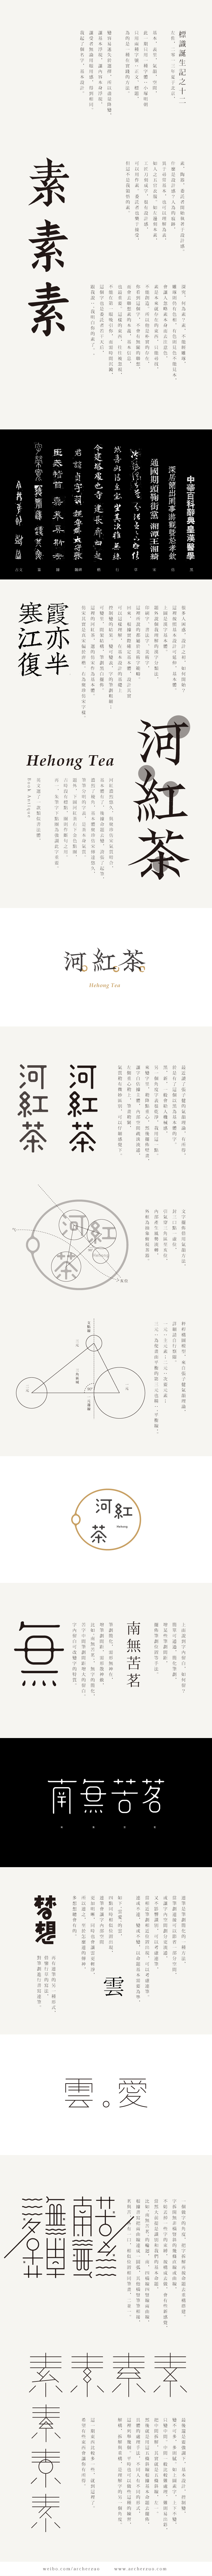 150+ Amazing Chinese Font Style Logos To See Right Now